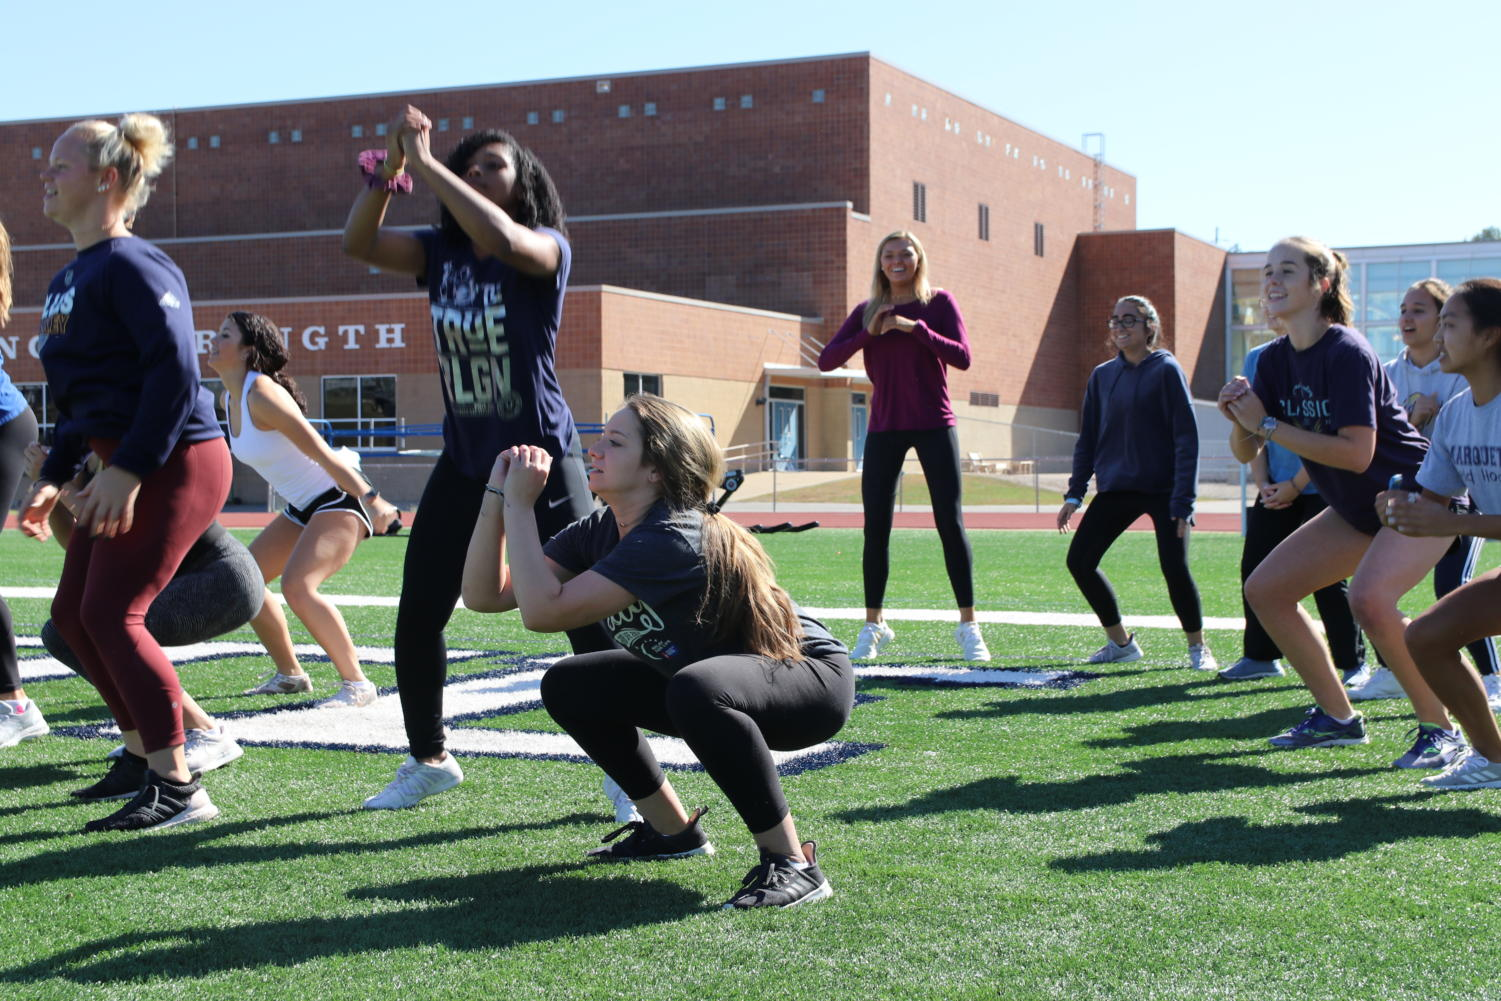 (Center) Melody Hollenbeck, senior, lands after doing a jump squat during Advanced Strength Training. Hollenbeck took the course after being encouraged by her cheer coaches.